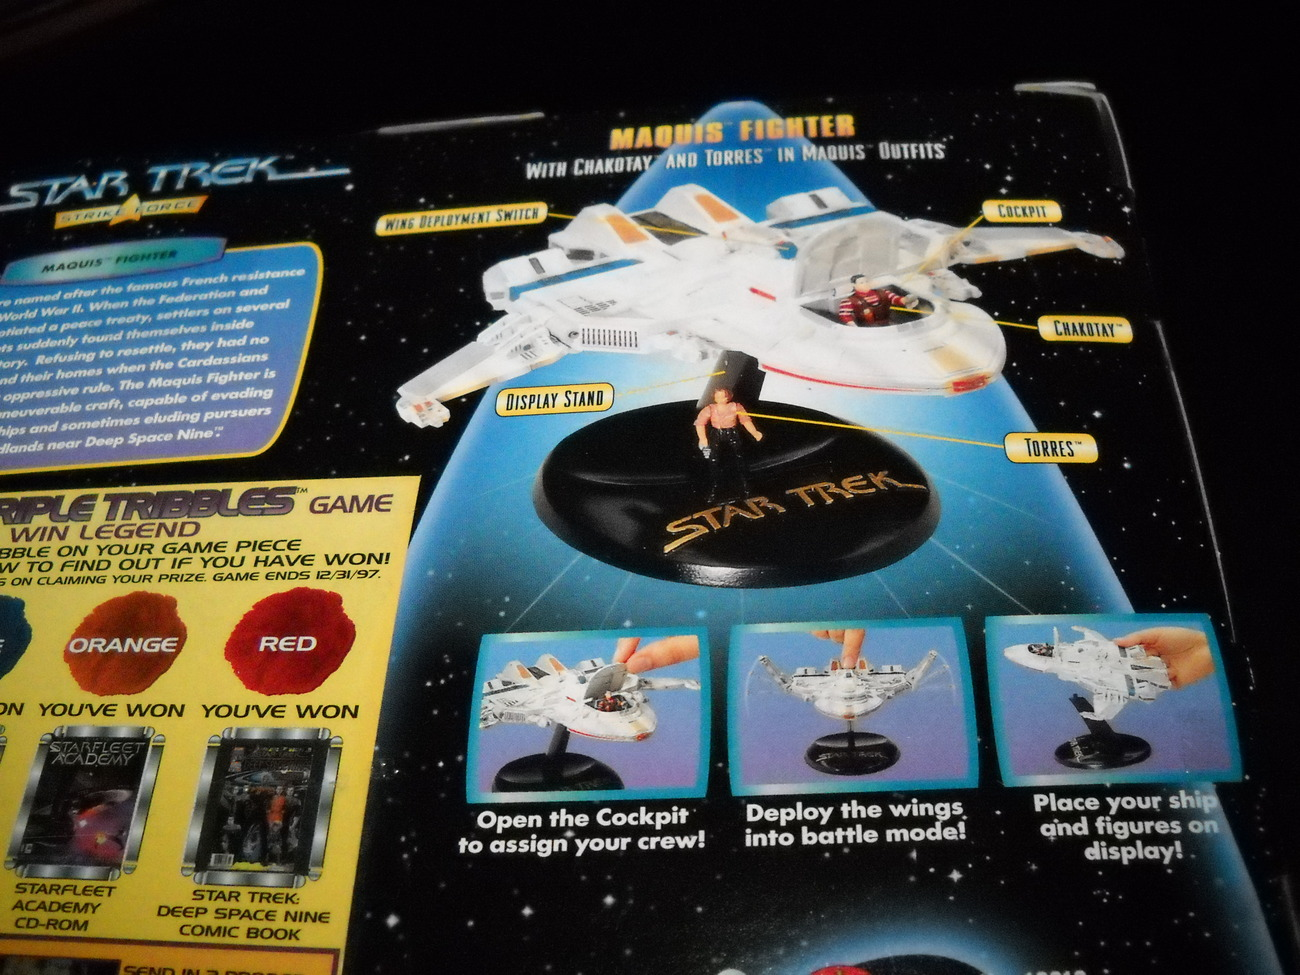 Mini playsets vaisseaux et figurines. Toy_Star_Trek_Playmates_Strike_Force_USS_Marquis_Fighter_1997_MIB_Sealed_05